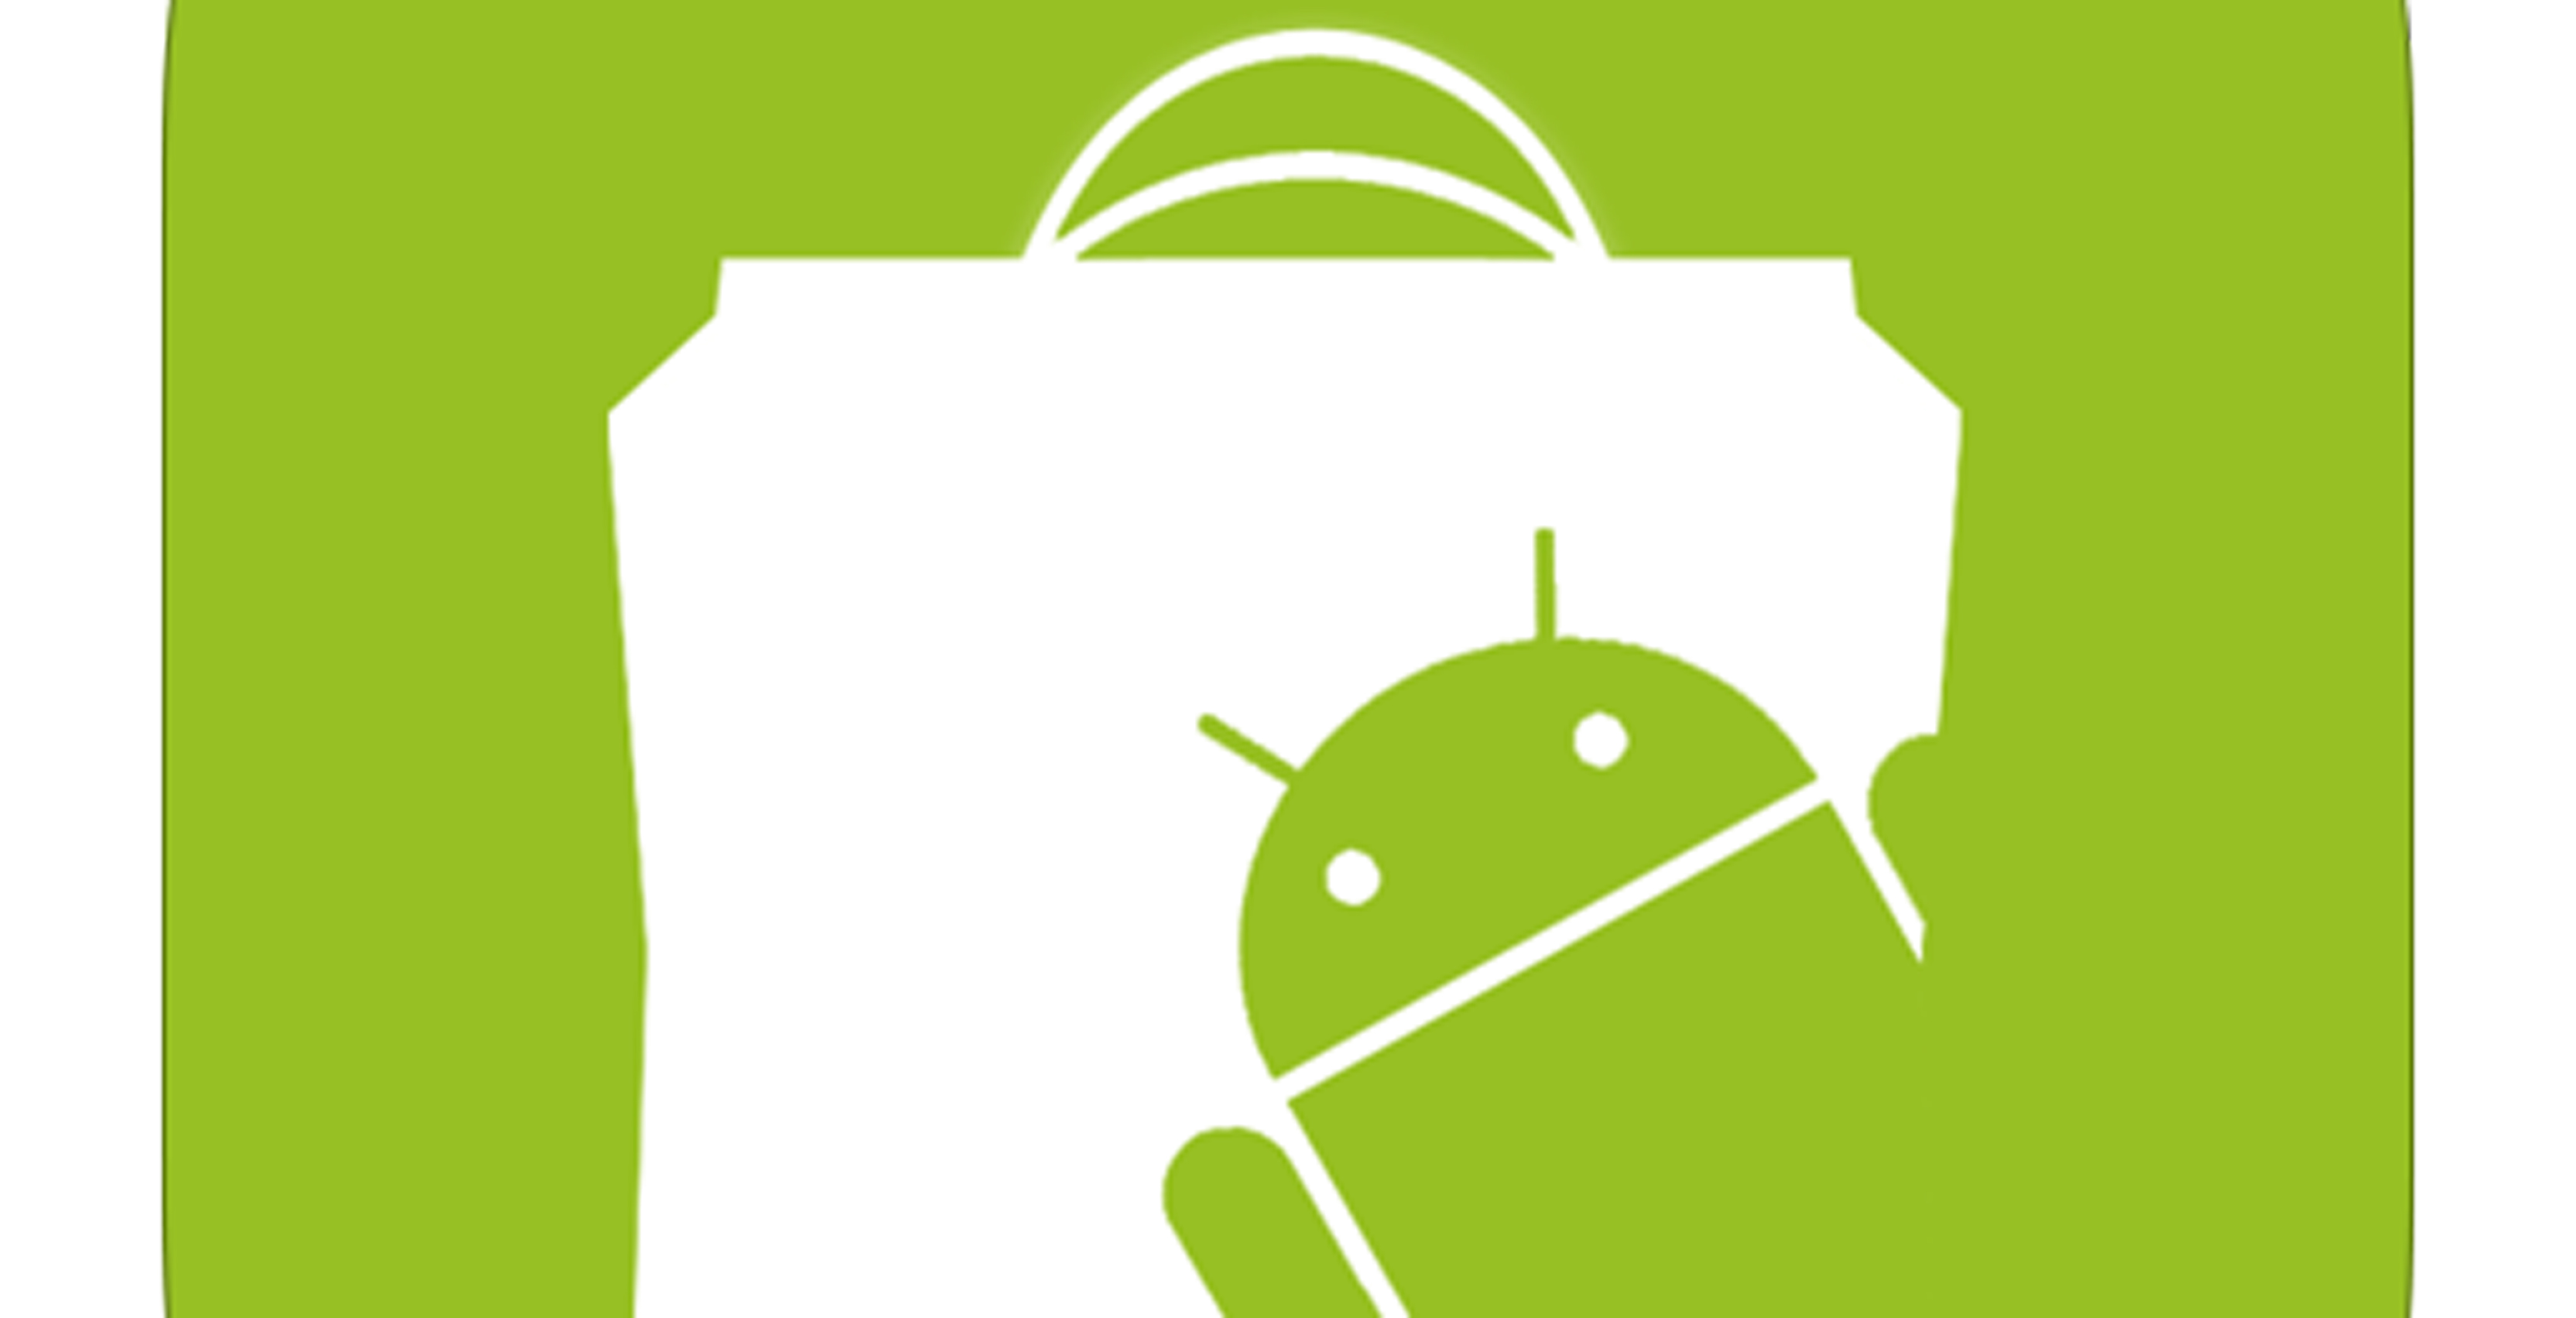 Baffling but Android was originally designed for digital cameras not phones-android market/google/technology updates